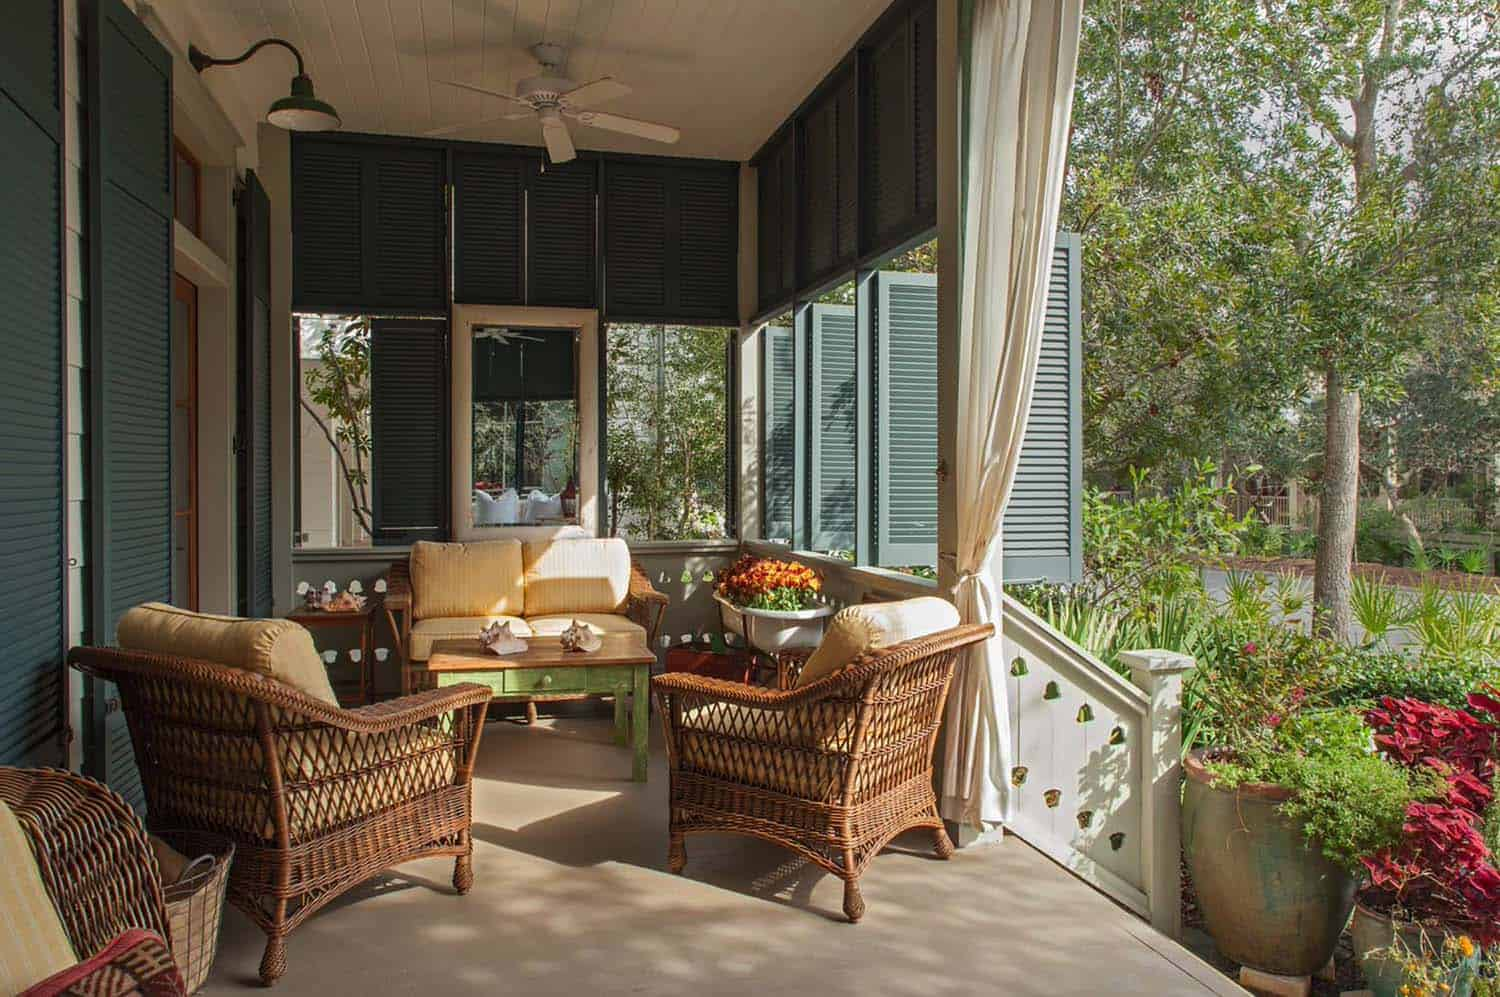 Fish Camp Beach Cottage-Historical Concepts-05-1 Kindesign